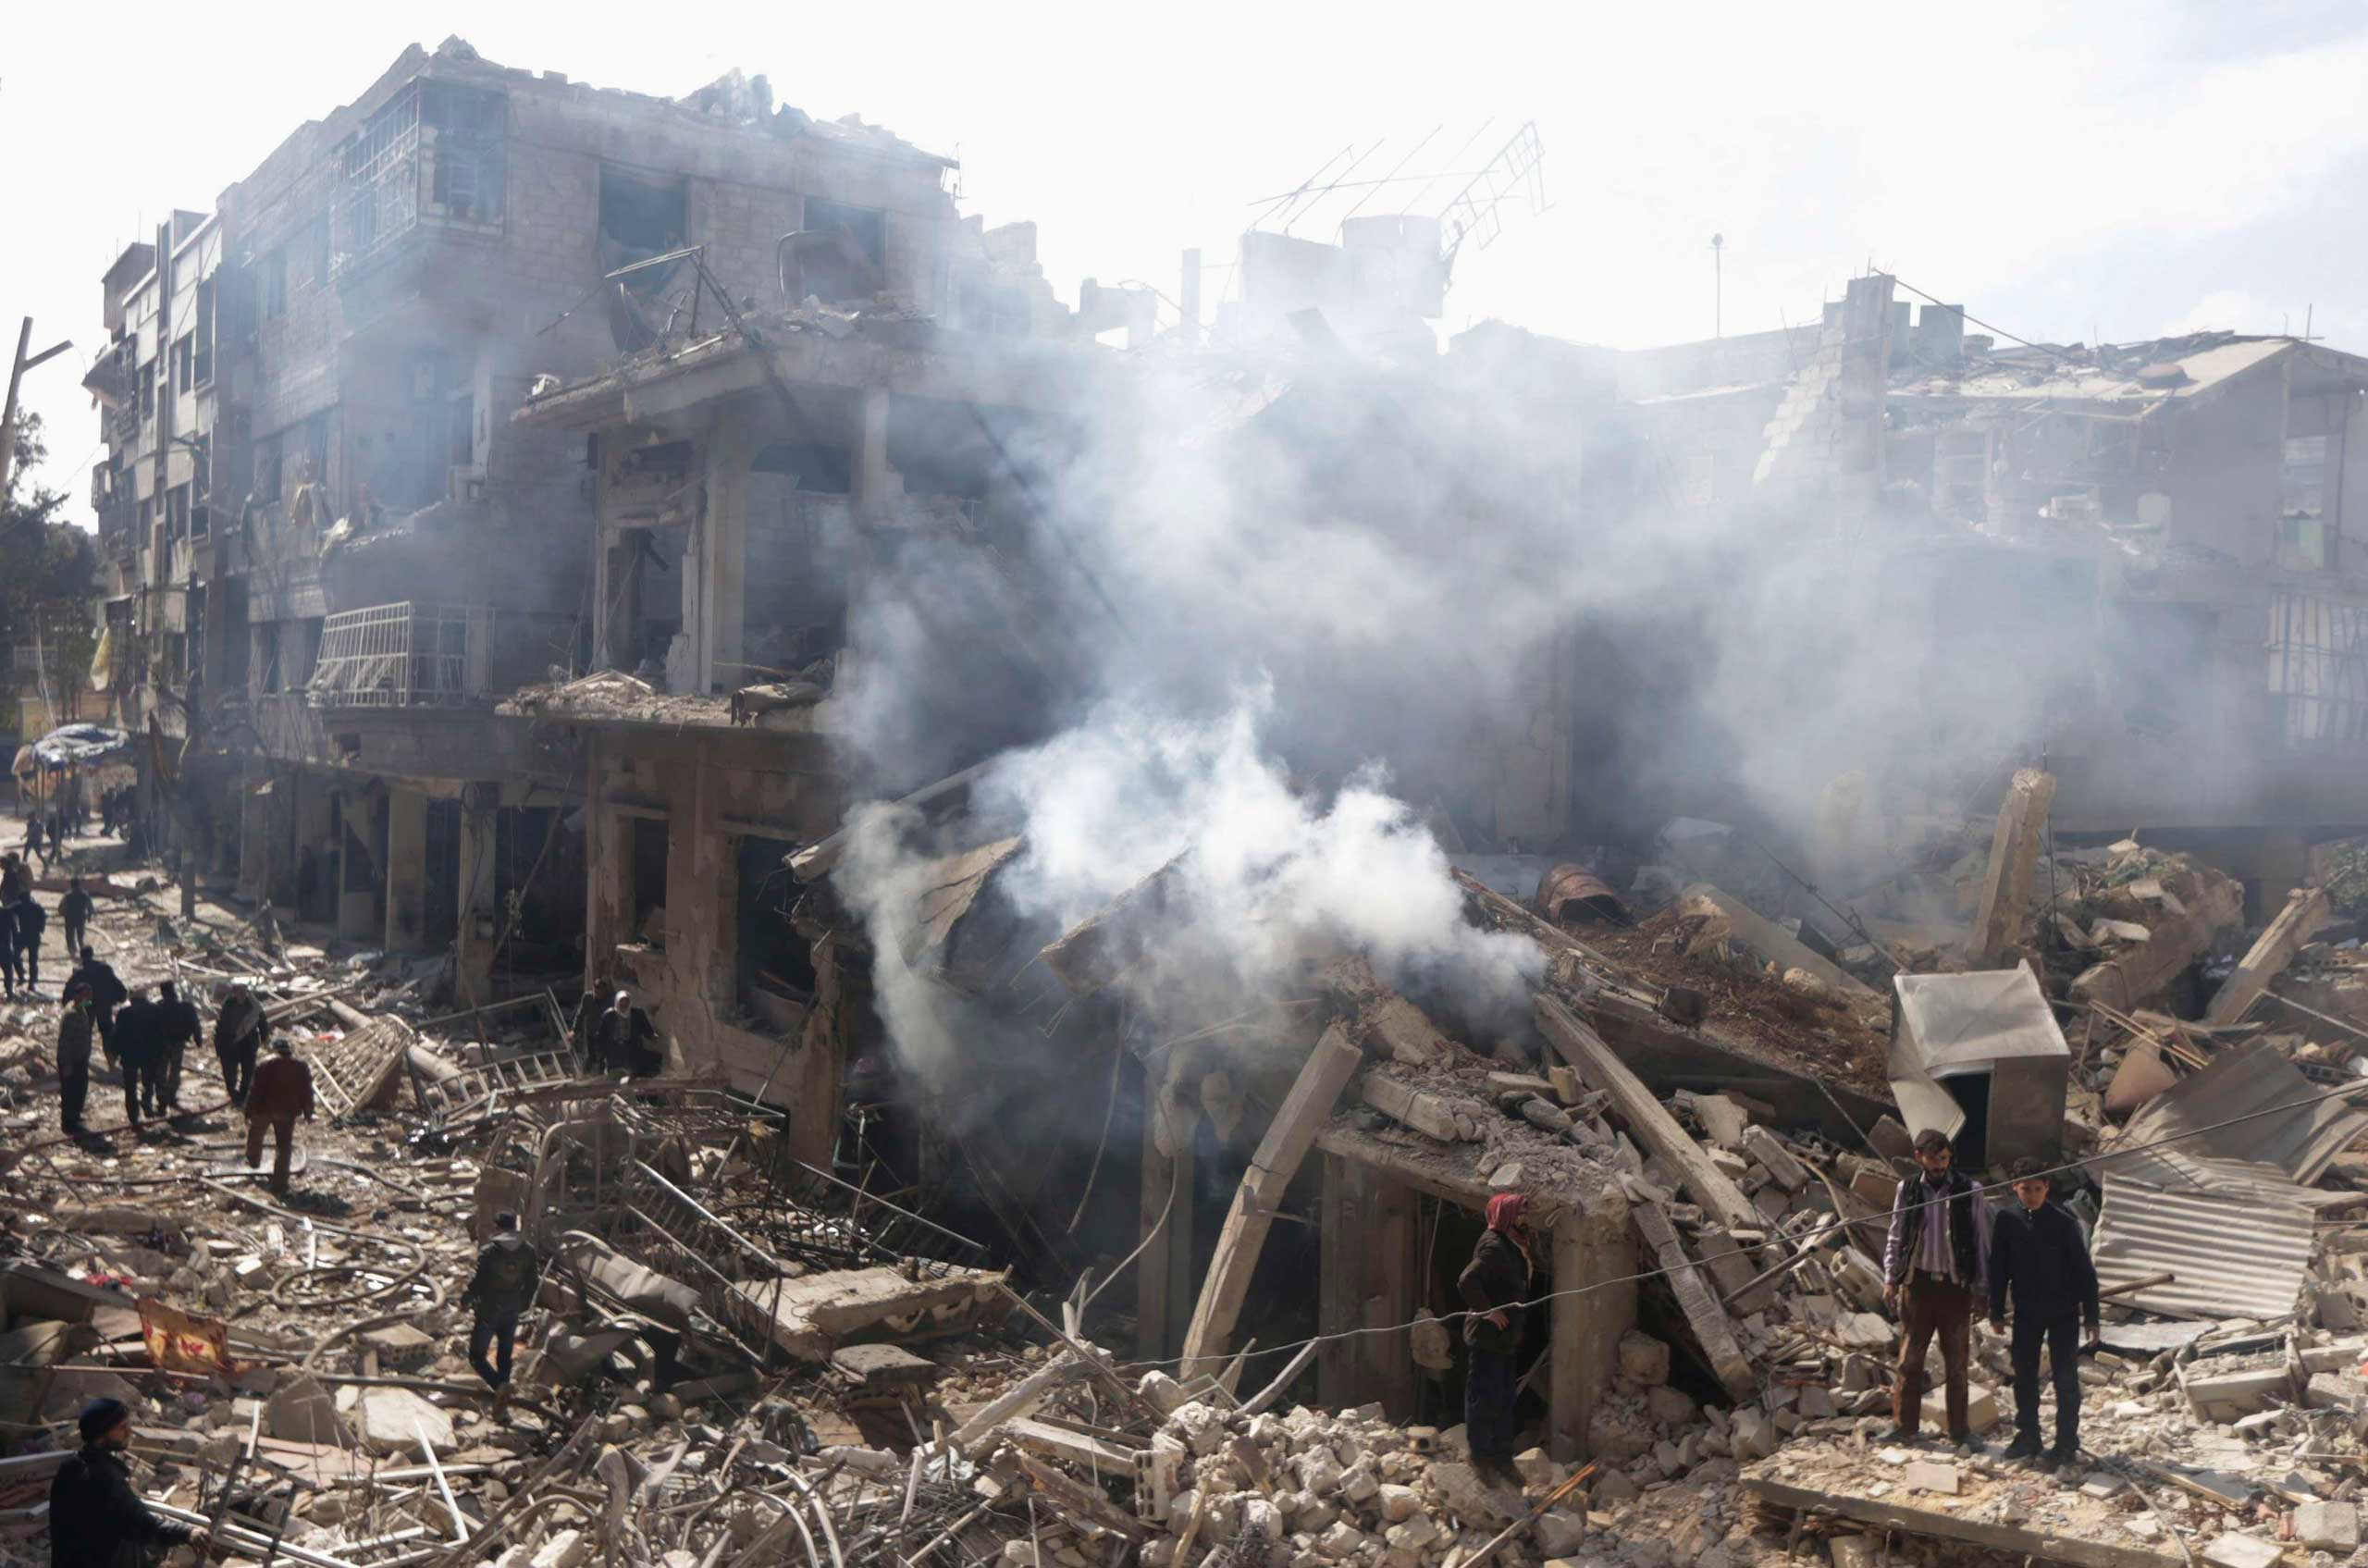 People inspect a site hit by what activists said were airstrikes by forces loyal to Syria's President Bashar Assad in the Douma neighborhood of Damascus, Feb. 9, 2015.